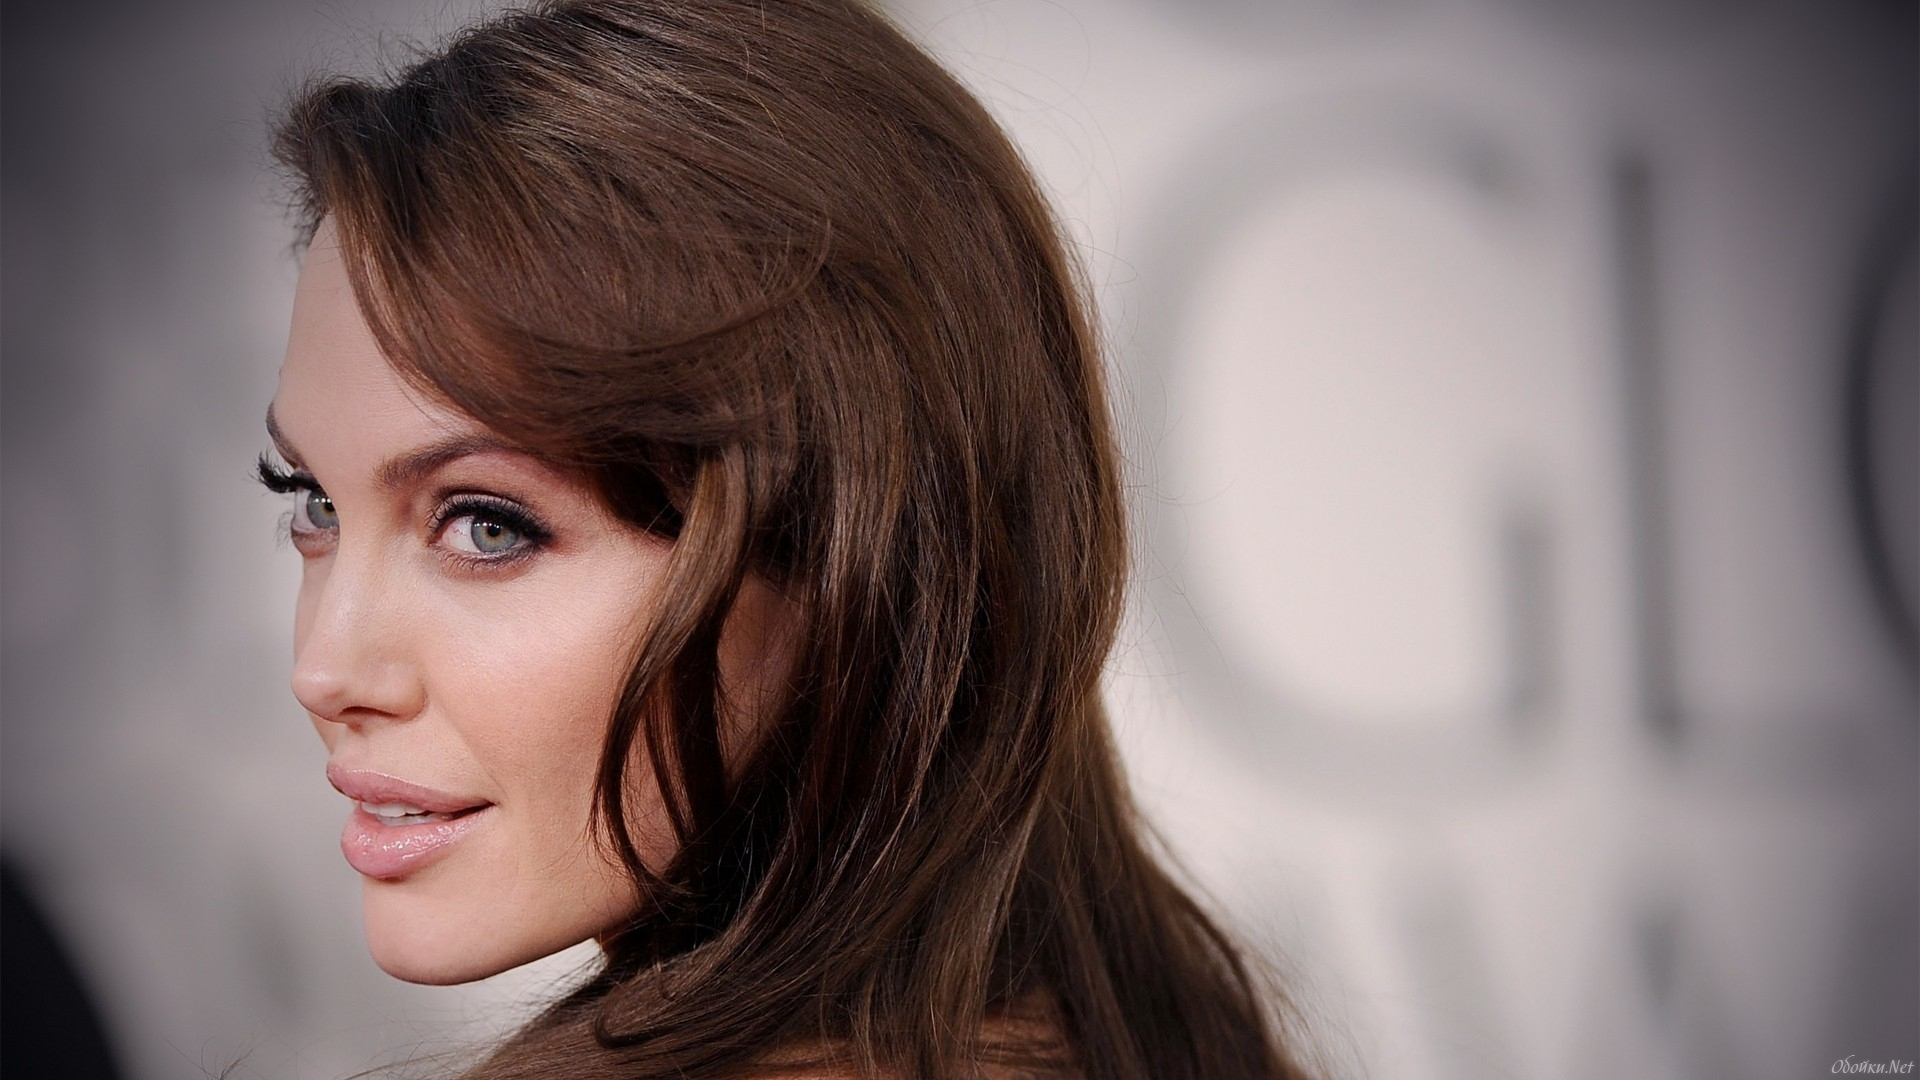 angelina jolie hd wallpapers, pictures, images